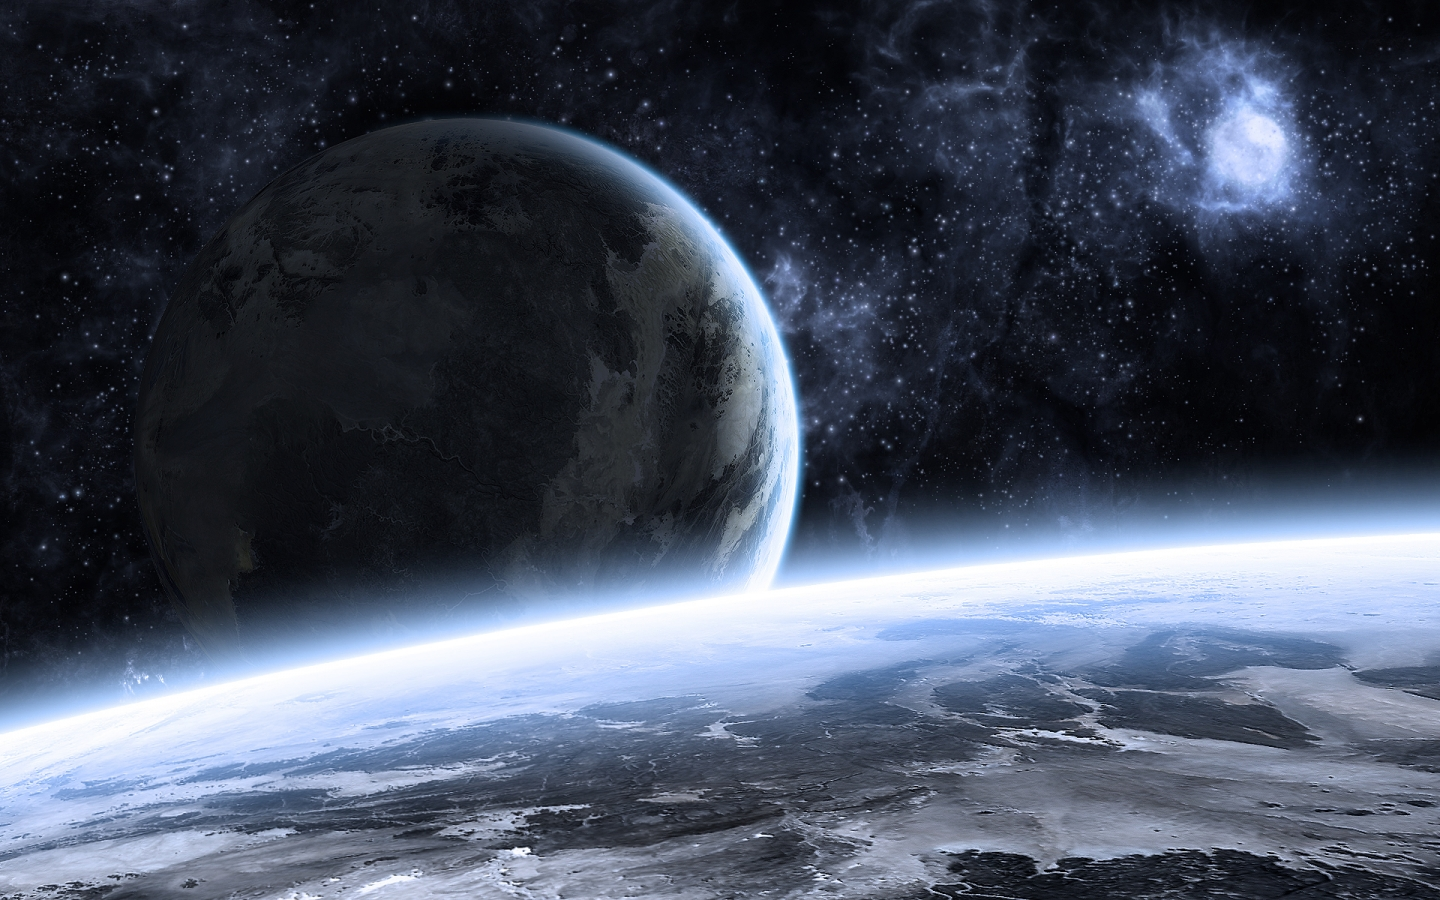 Beautiful Space Landscape for 1440 x 900 widescreen resolution